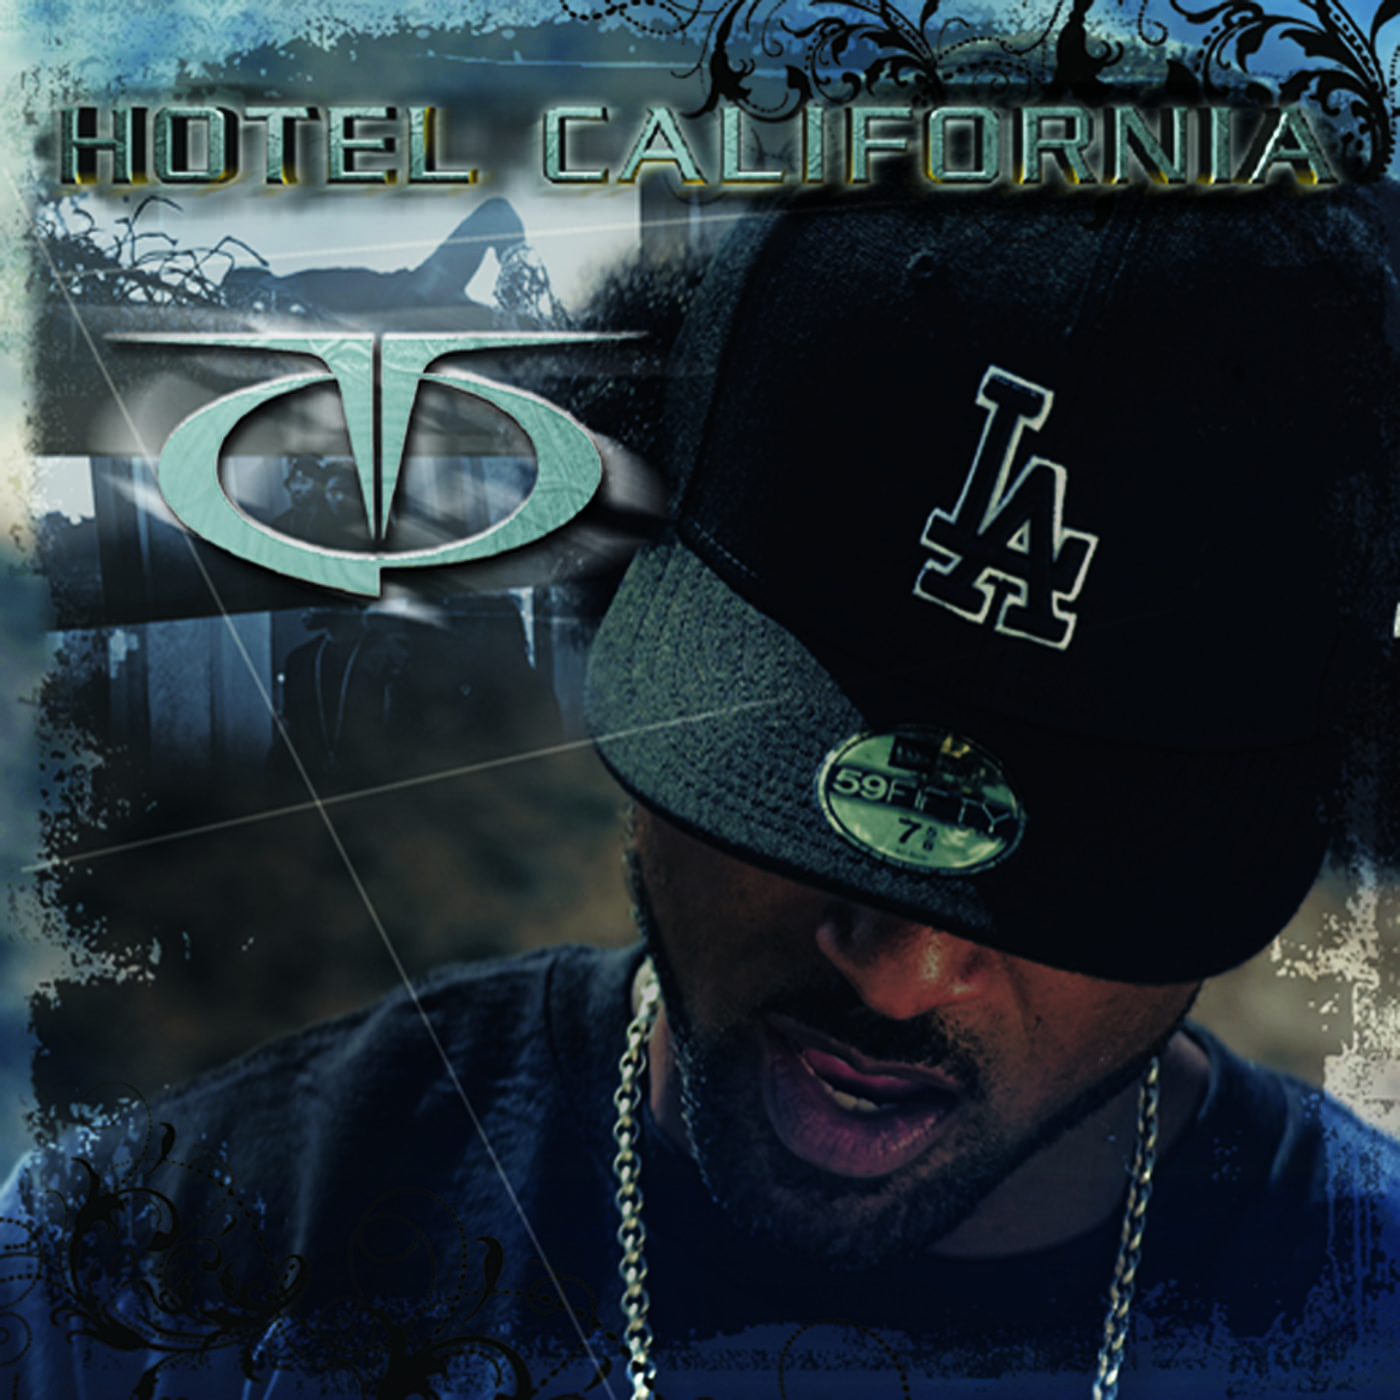 https://therealtq.com/wp-content/uploads/2017/01/HOTEL-CALI-SINGLE-COVER-SMALL.jpg